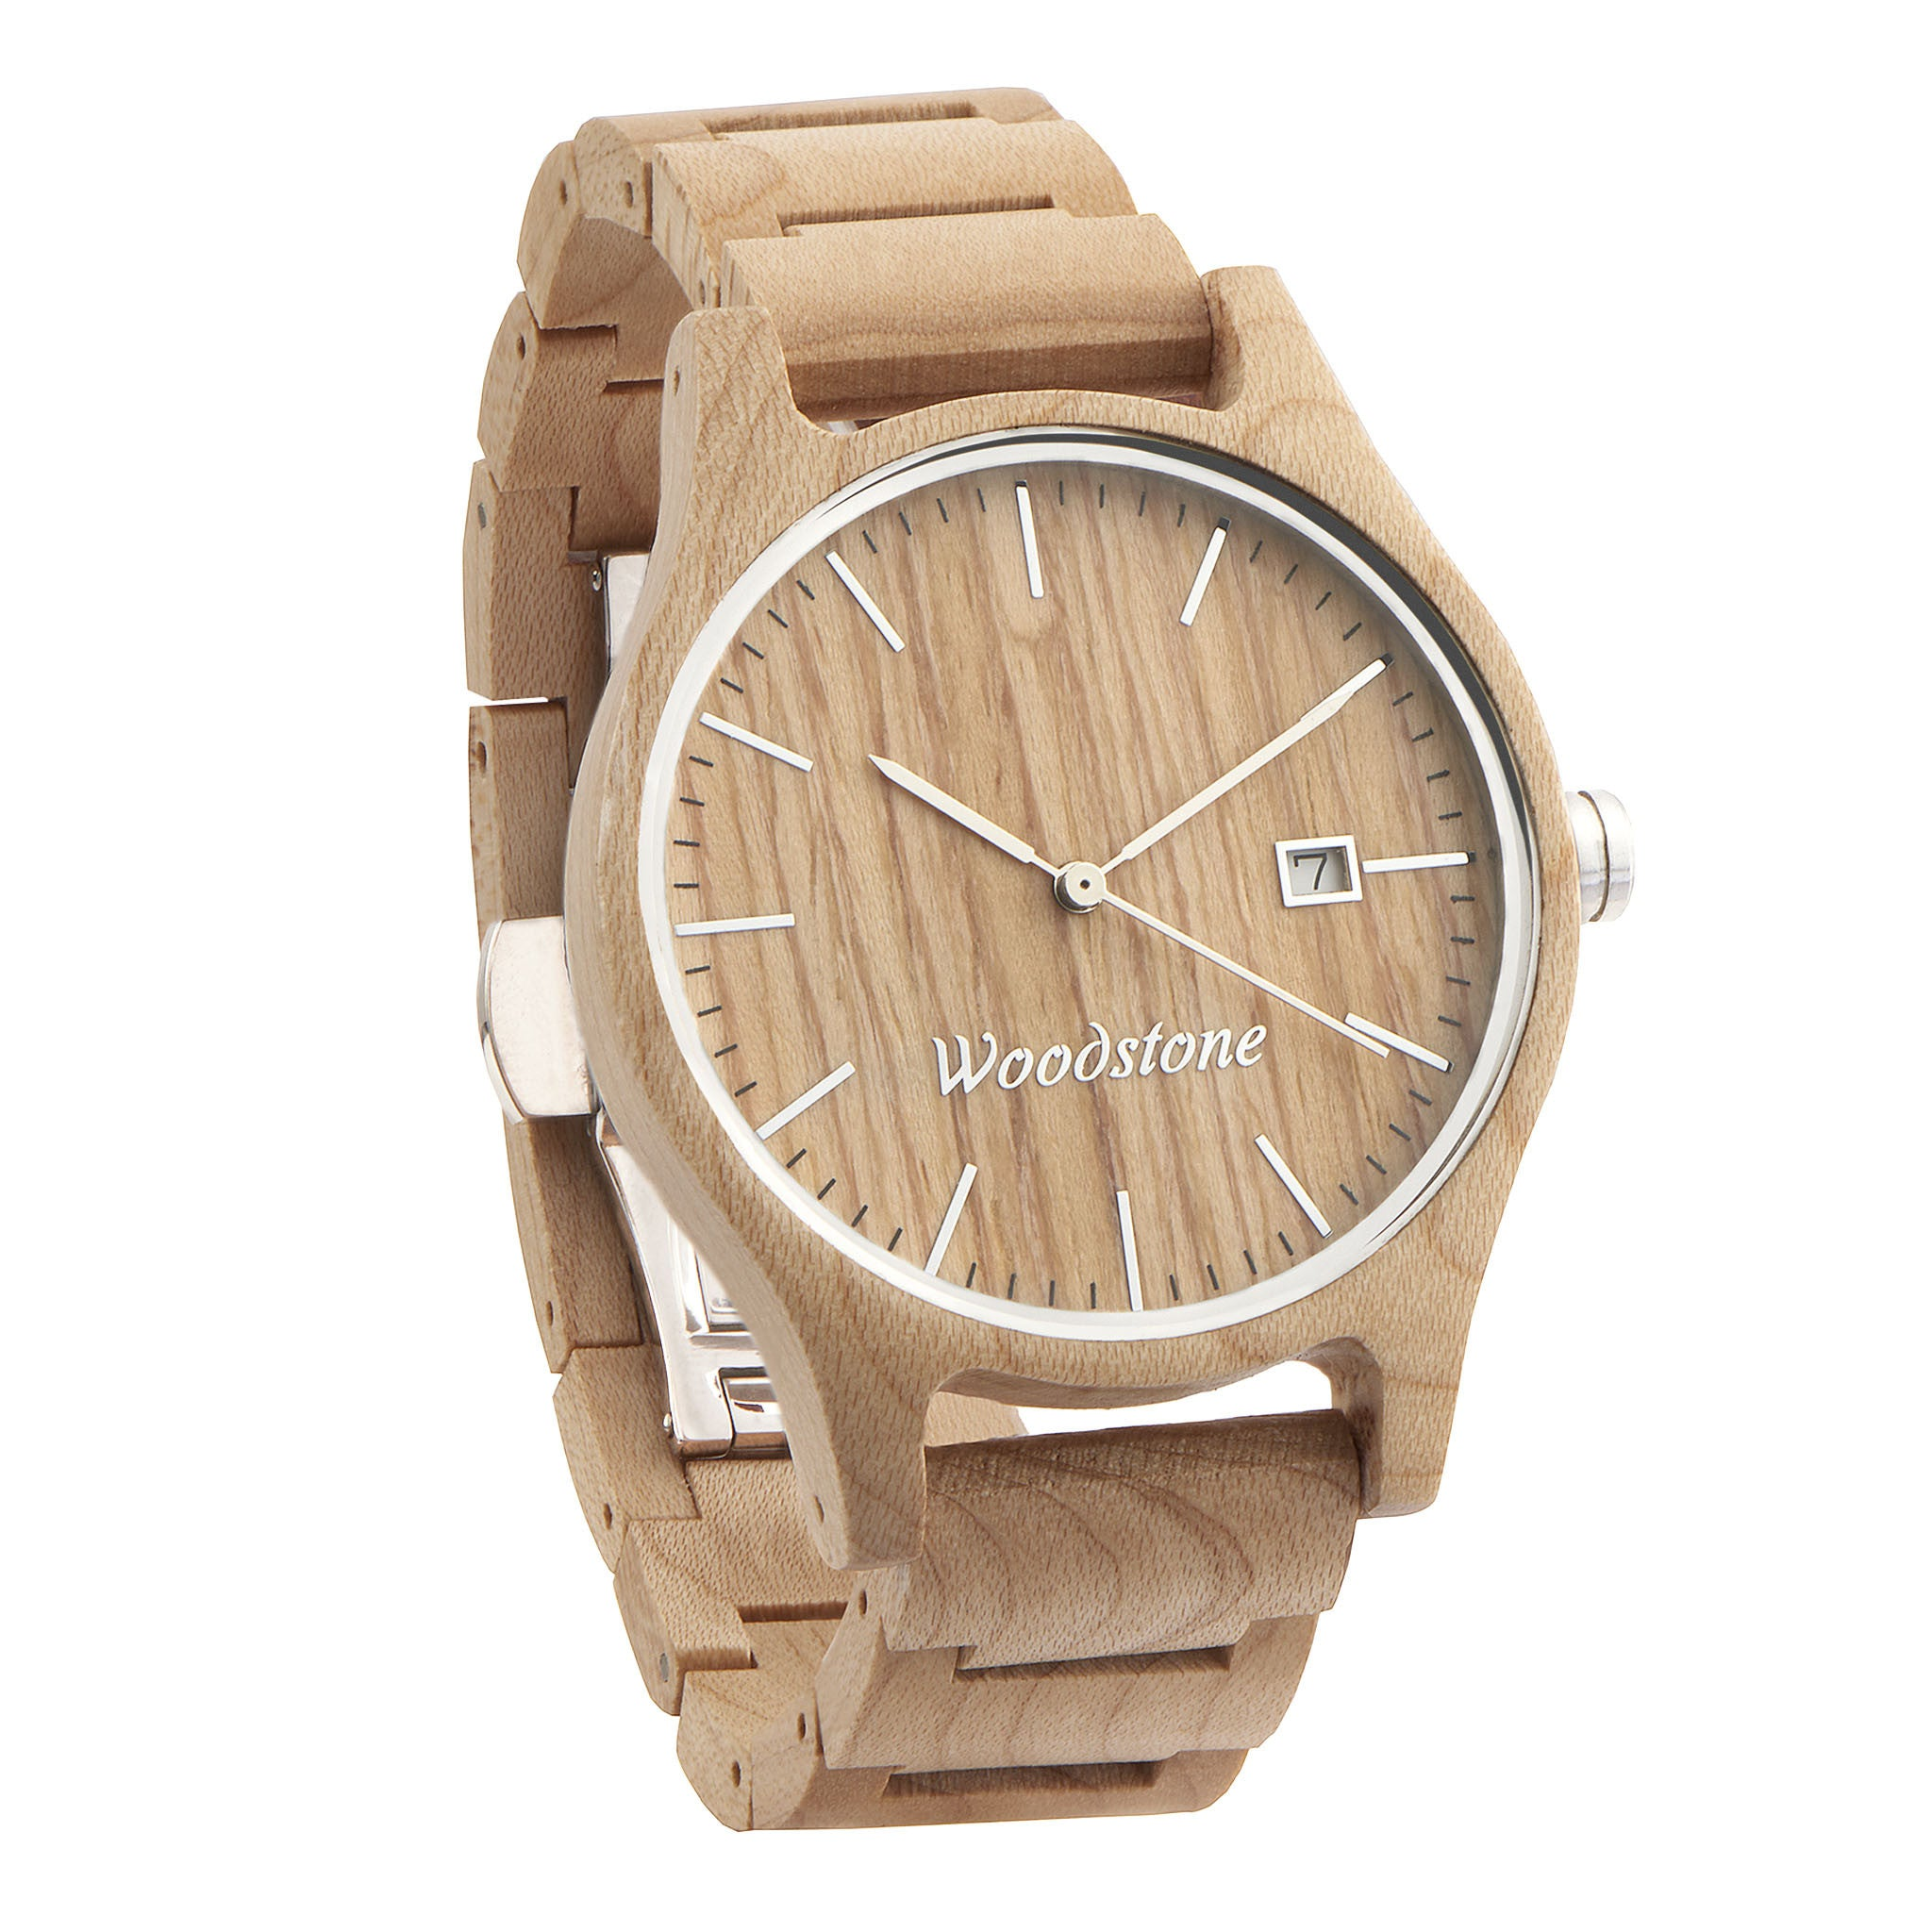 watches gobi watch natural earth products bags wood cork goods sunglasses butterfly